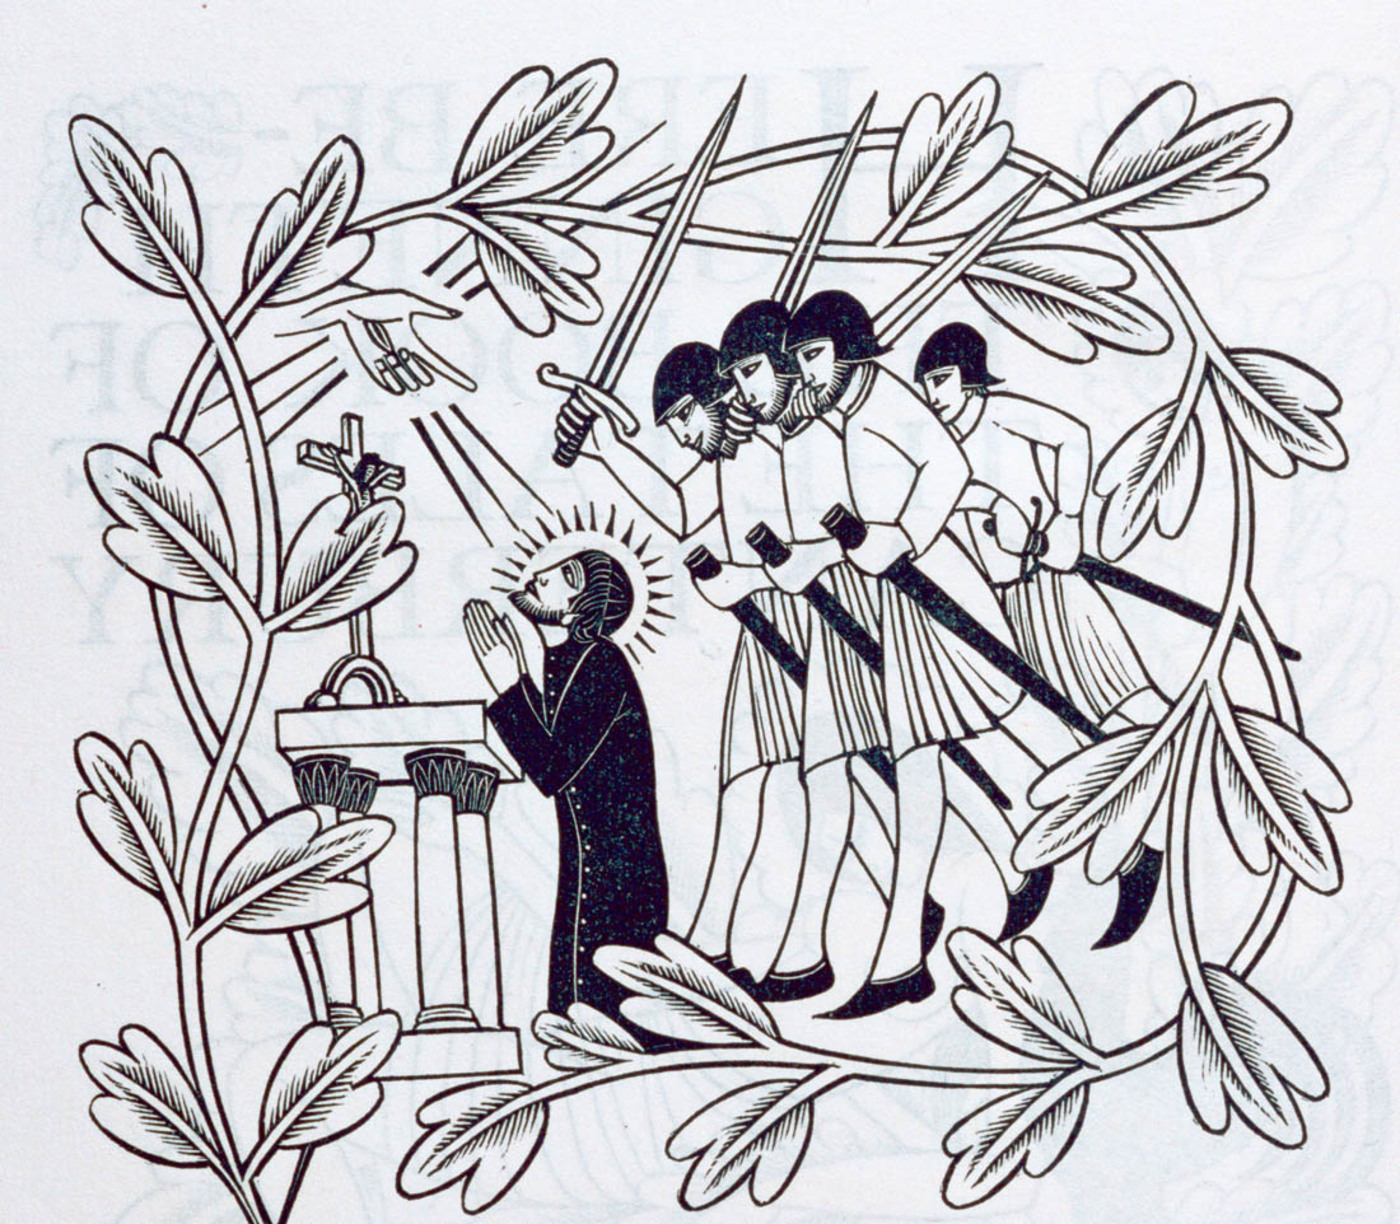 Black and white illustrating of man kneeling at an alter, four knights at his back, surrounded by branch of leaves.